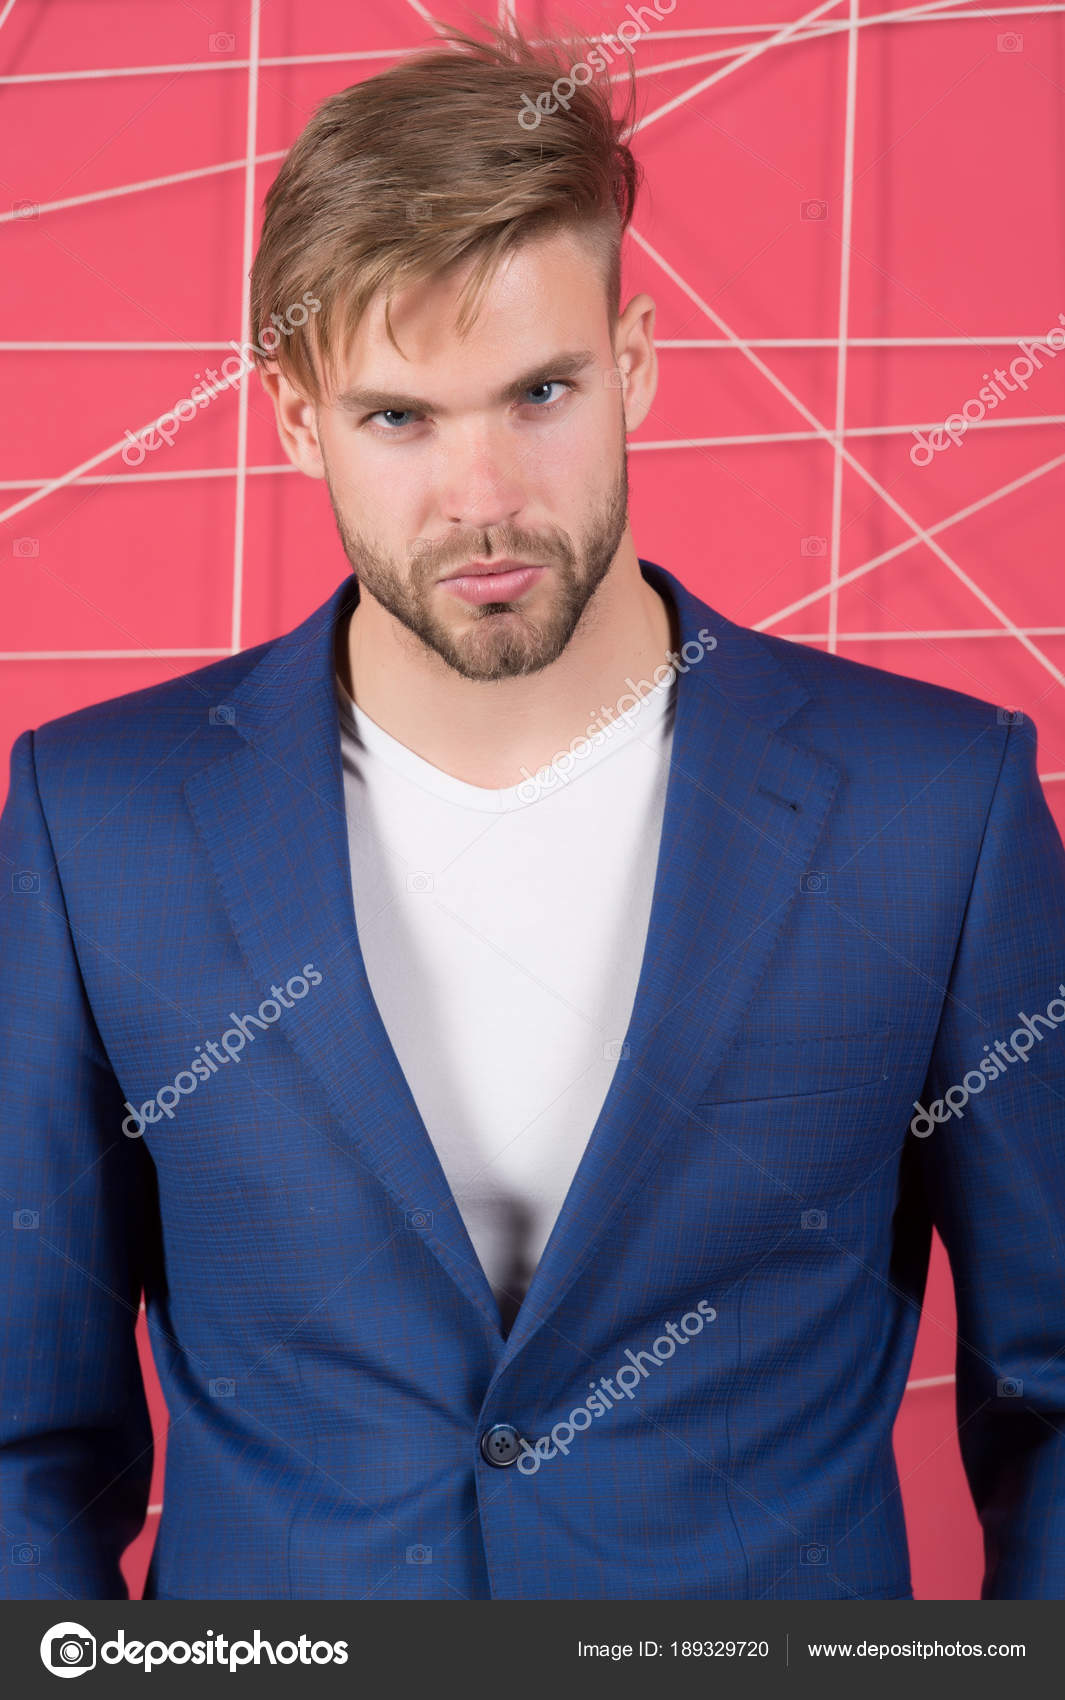 Man in formal suit jacket and tshirt, fashion. Businessman